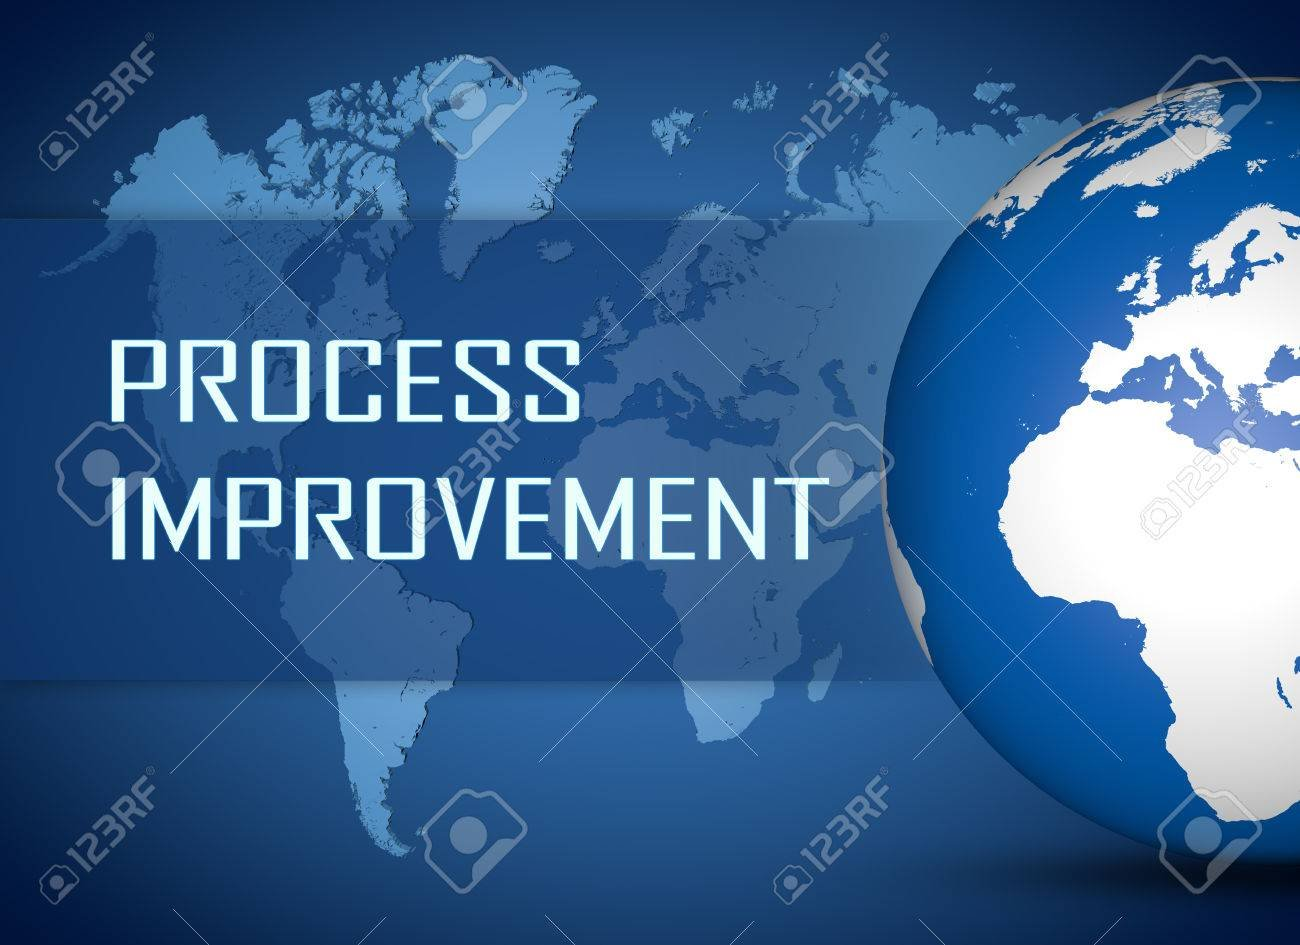 Process Improvement Concept With Globe On Blue World Map 1300x945